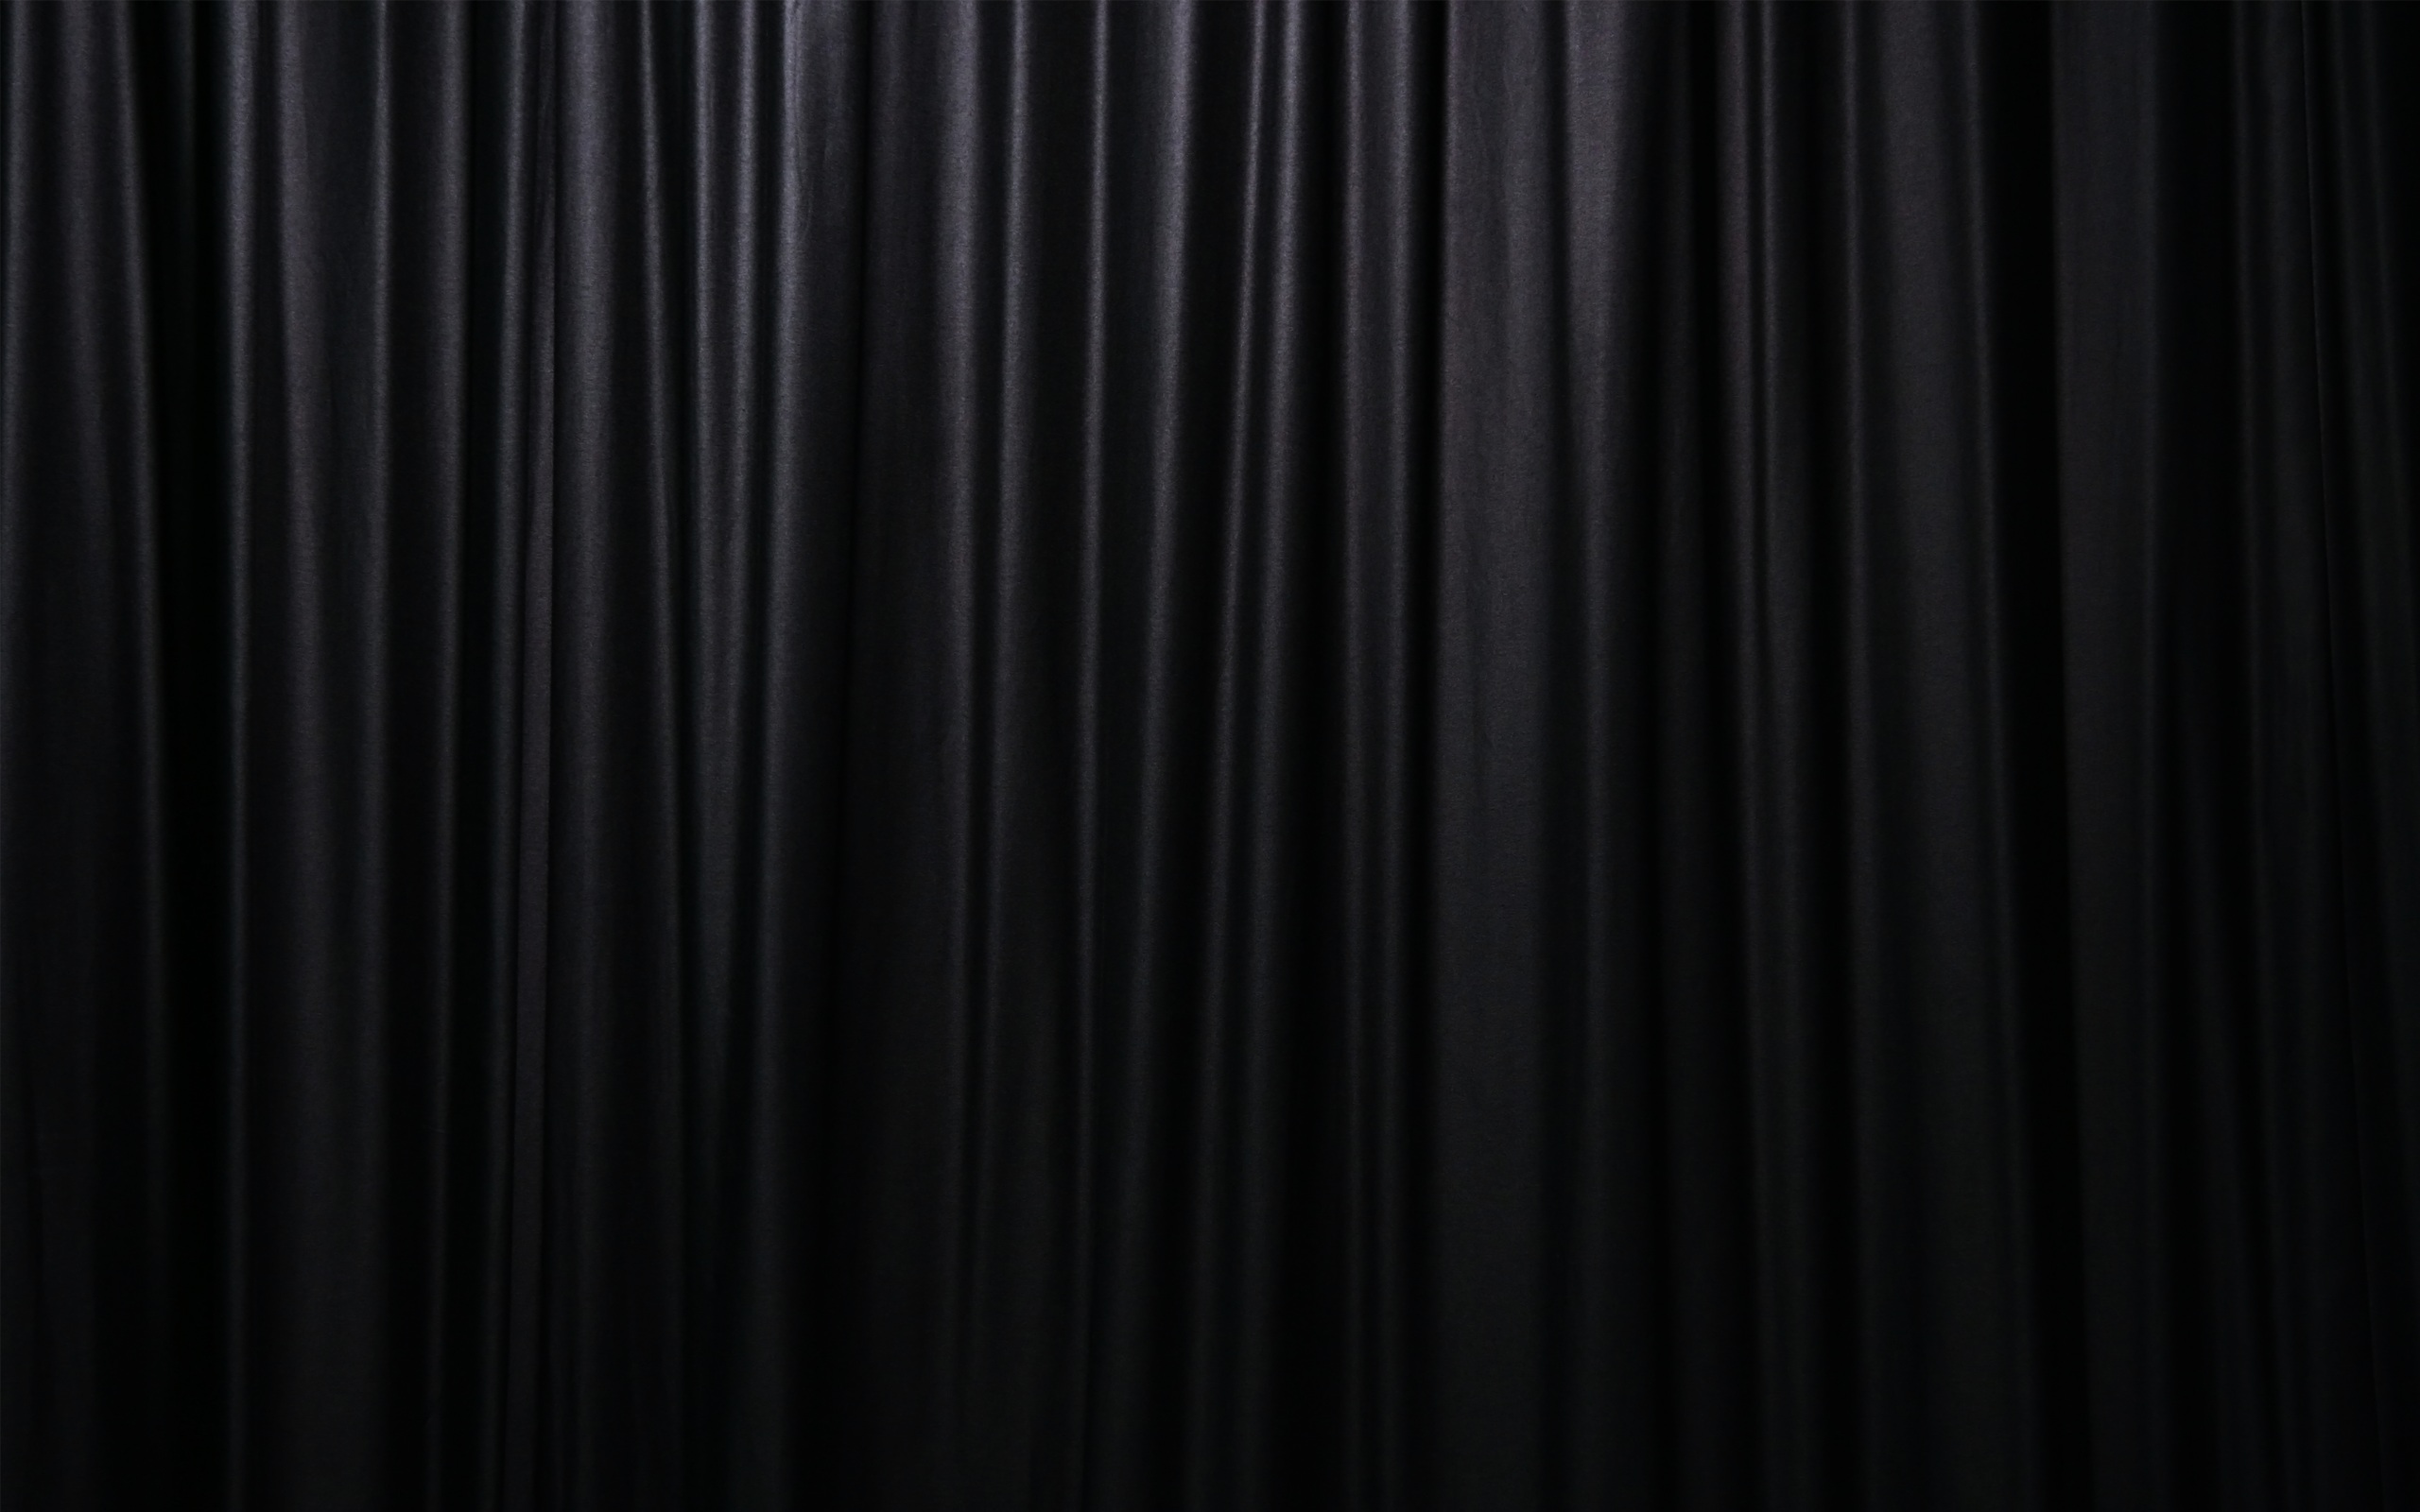 Curtain Blind Black Background